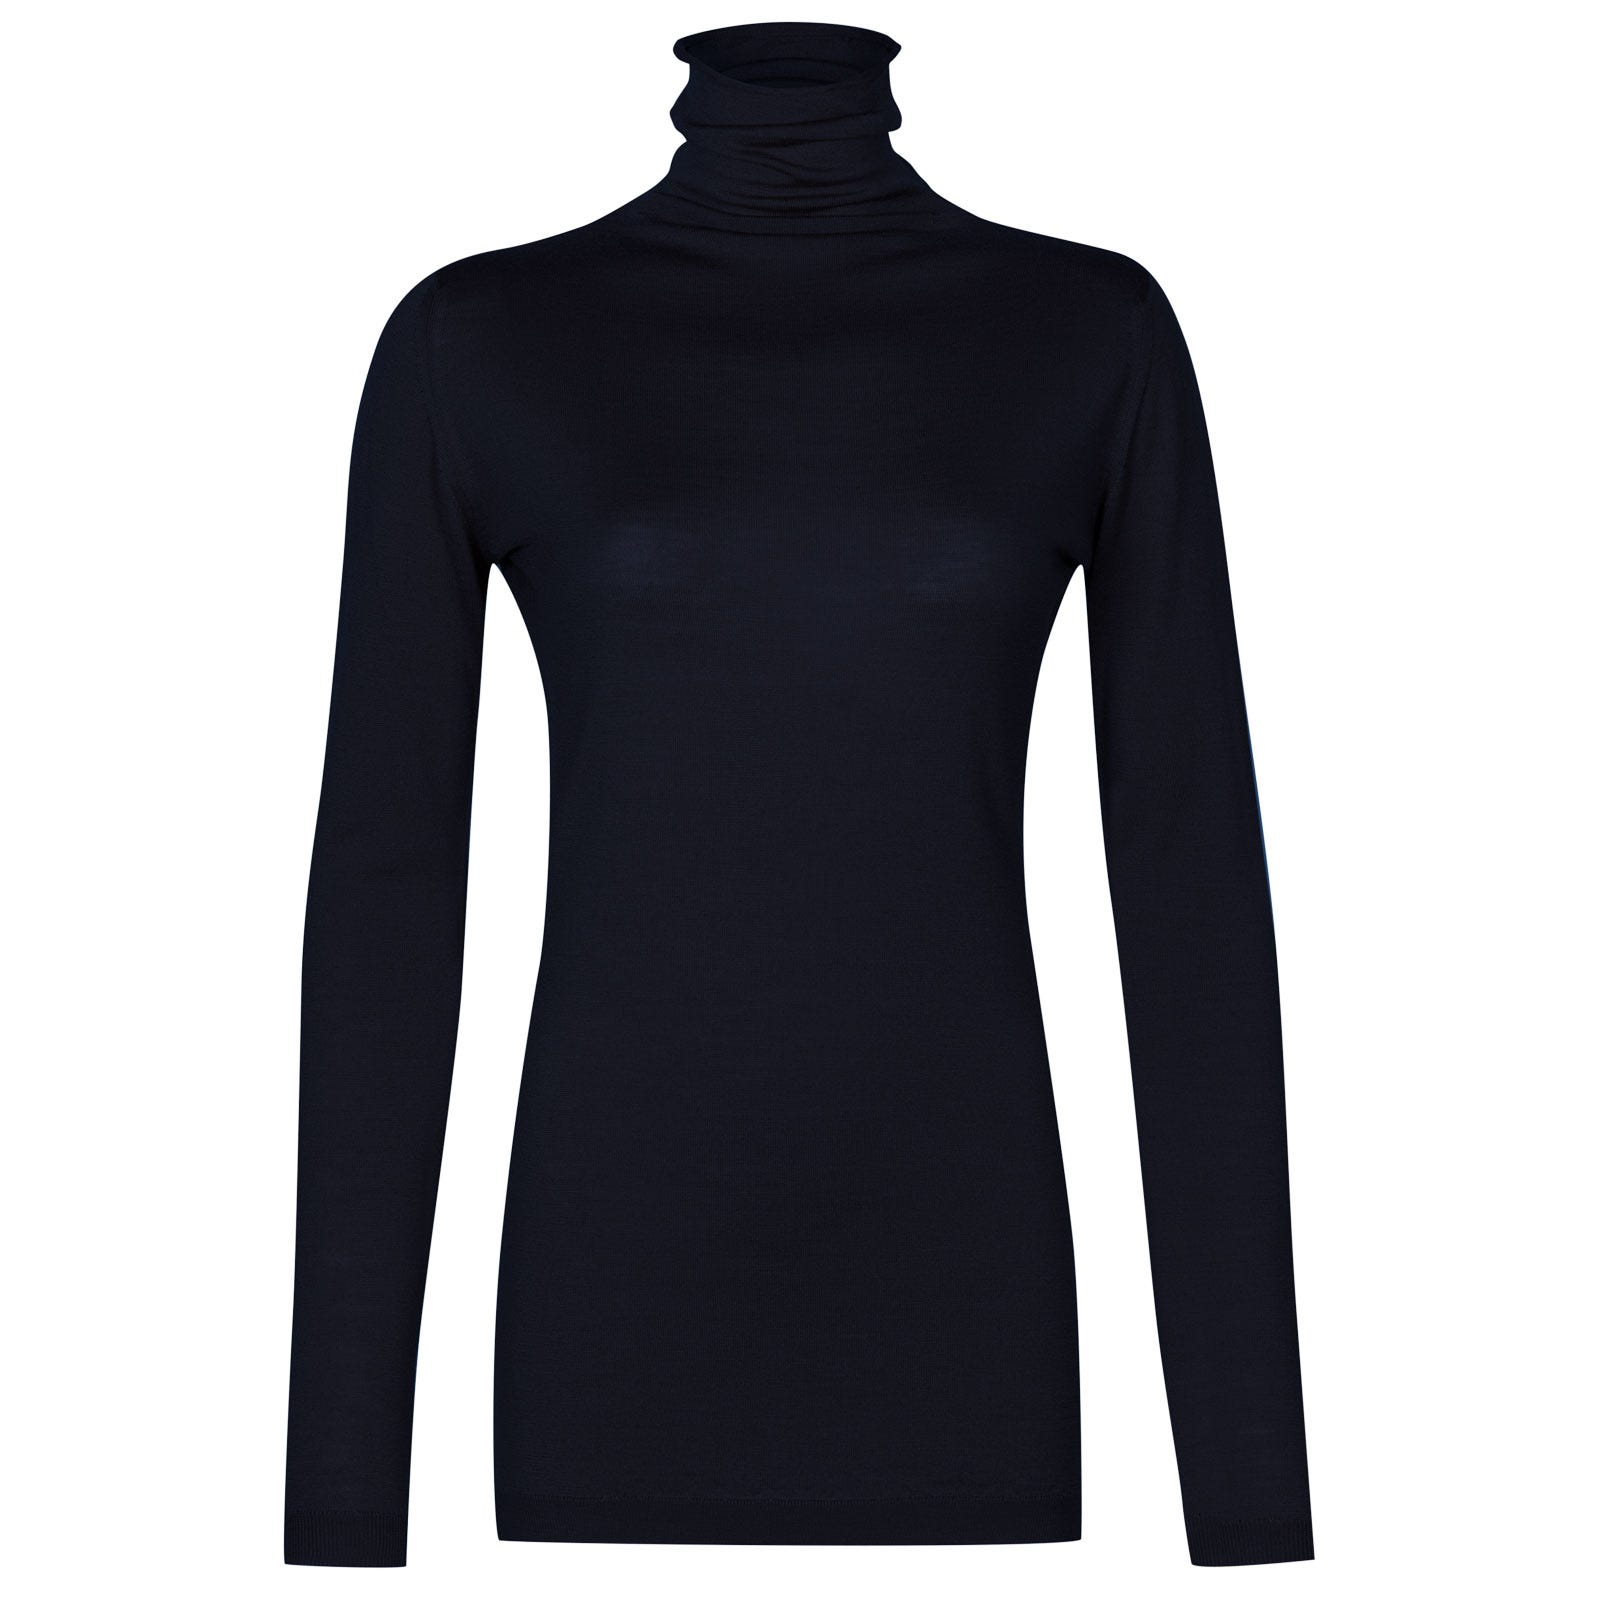 John Smedley westley Merino Wool Sweater in Midnight-S